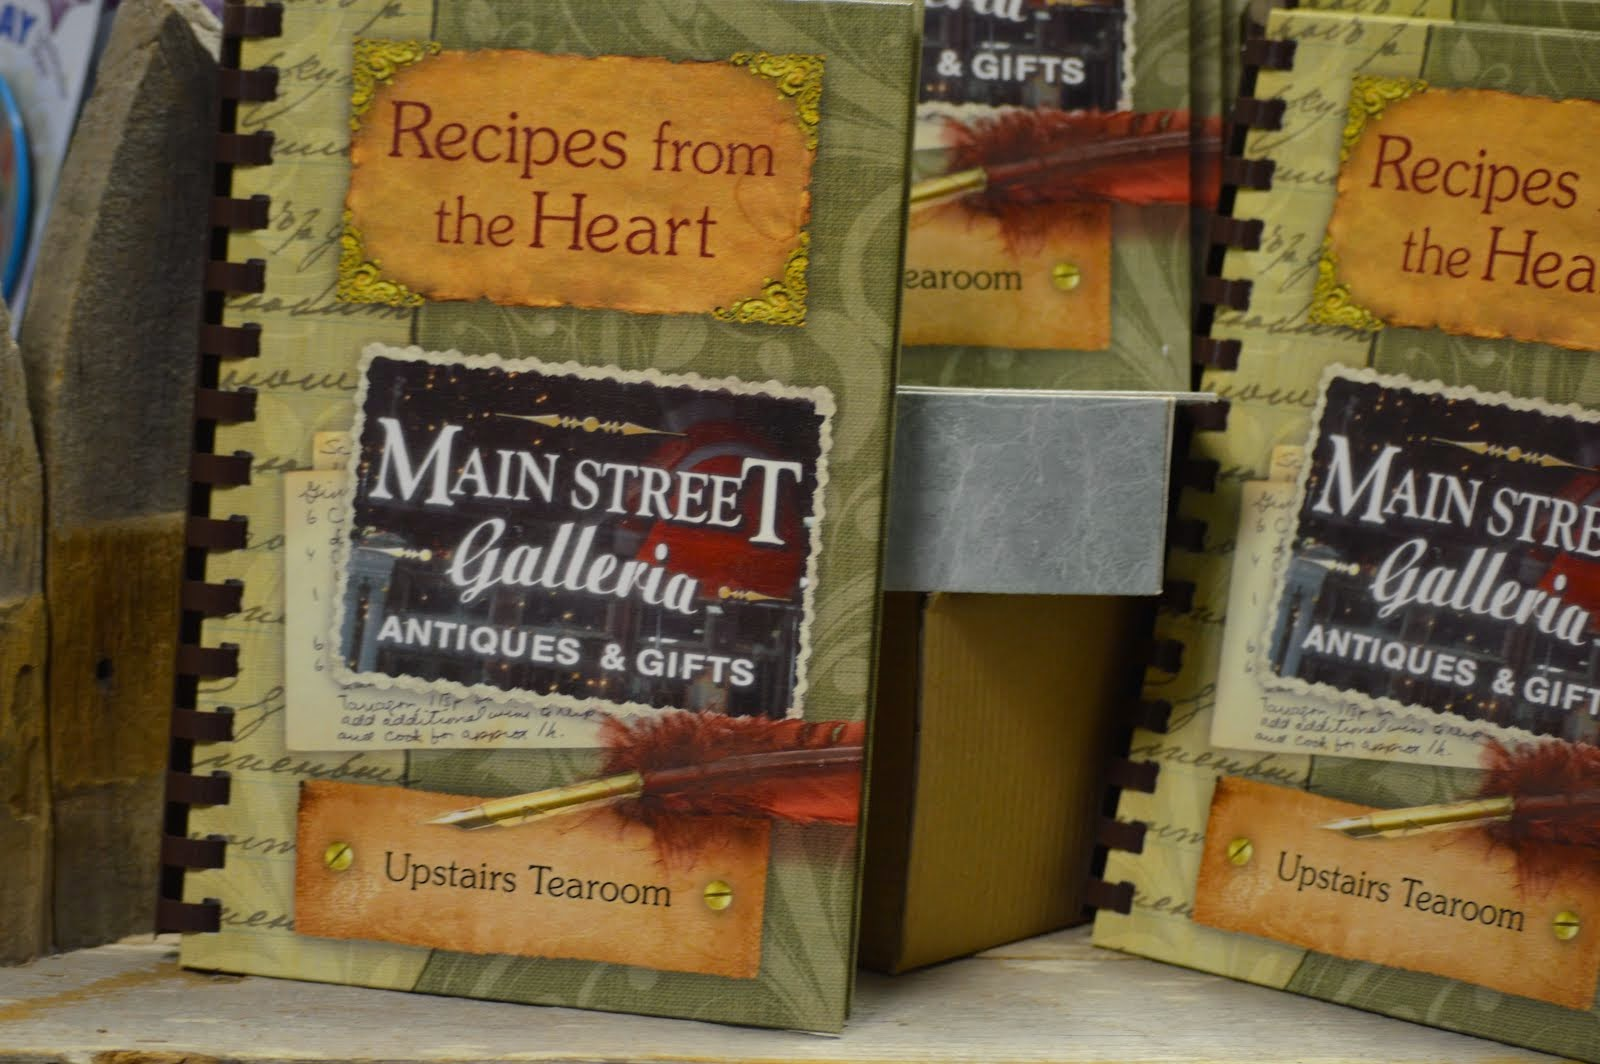 Main Street Galleria Cookbook